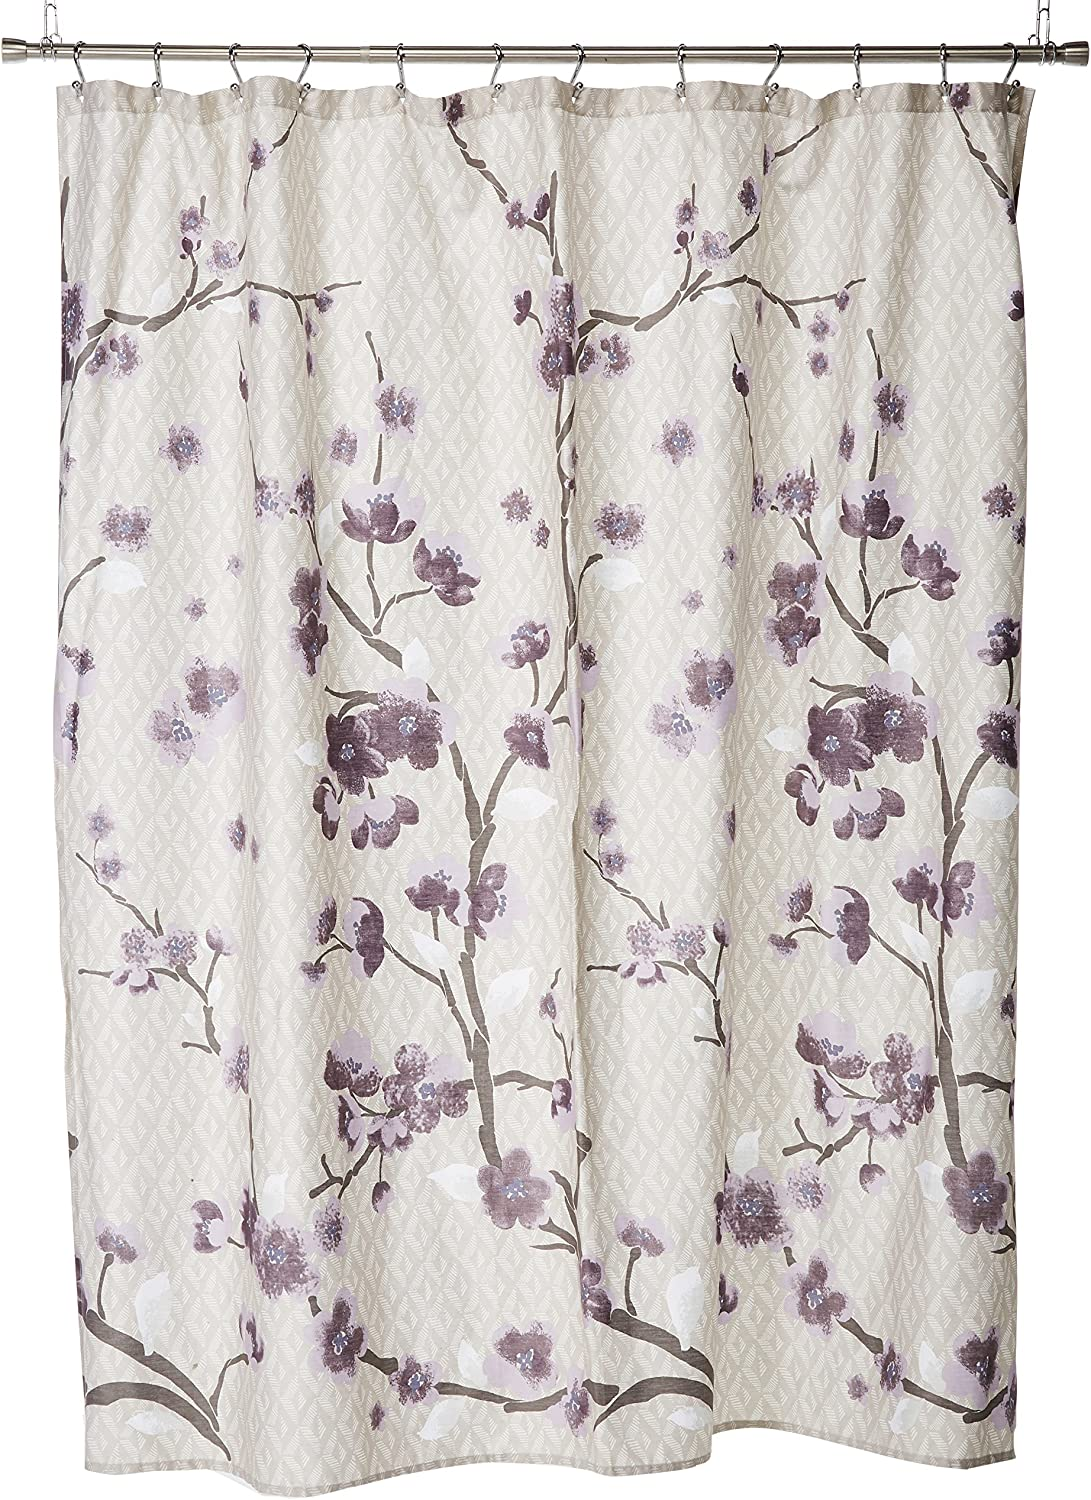 Madison Park Holly Modern Cotton Fabric Long Shower Curtain, Floral Shower Curtains for Bathroom, 72 X 72, Yellow